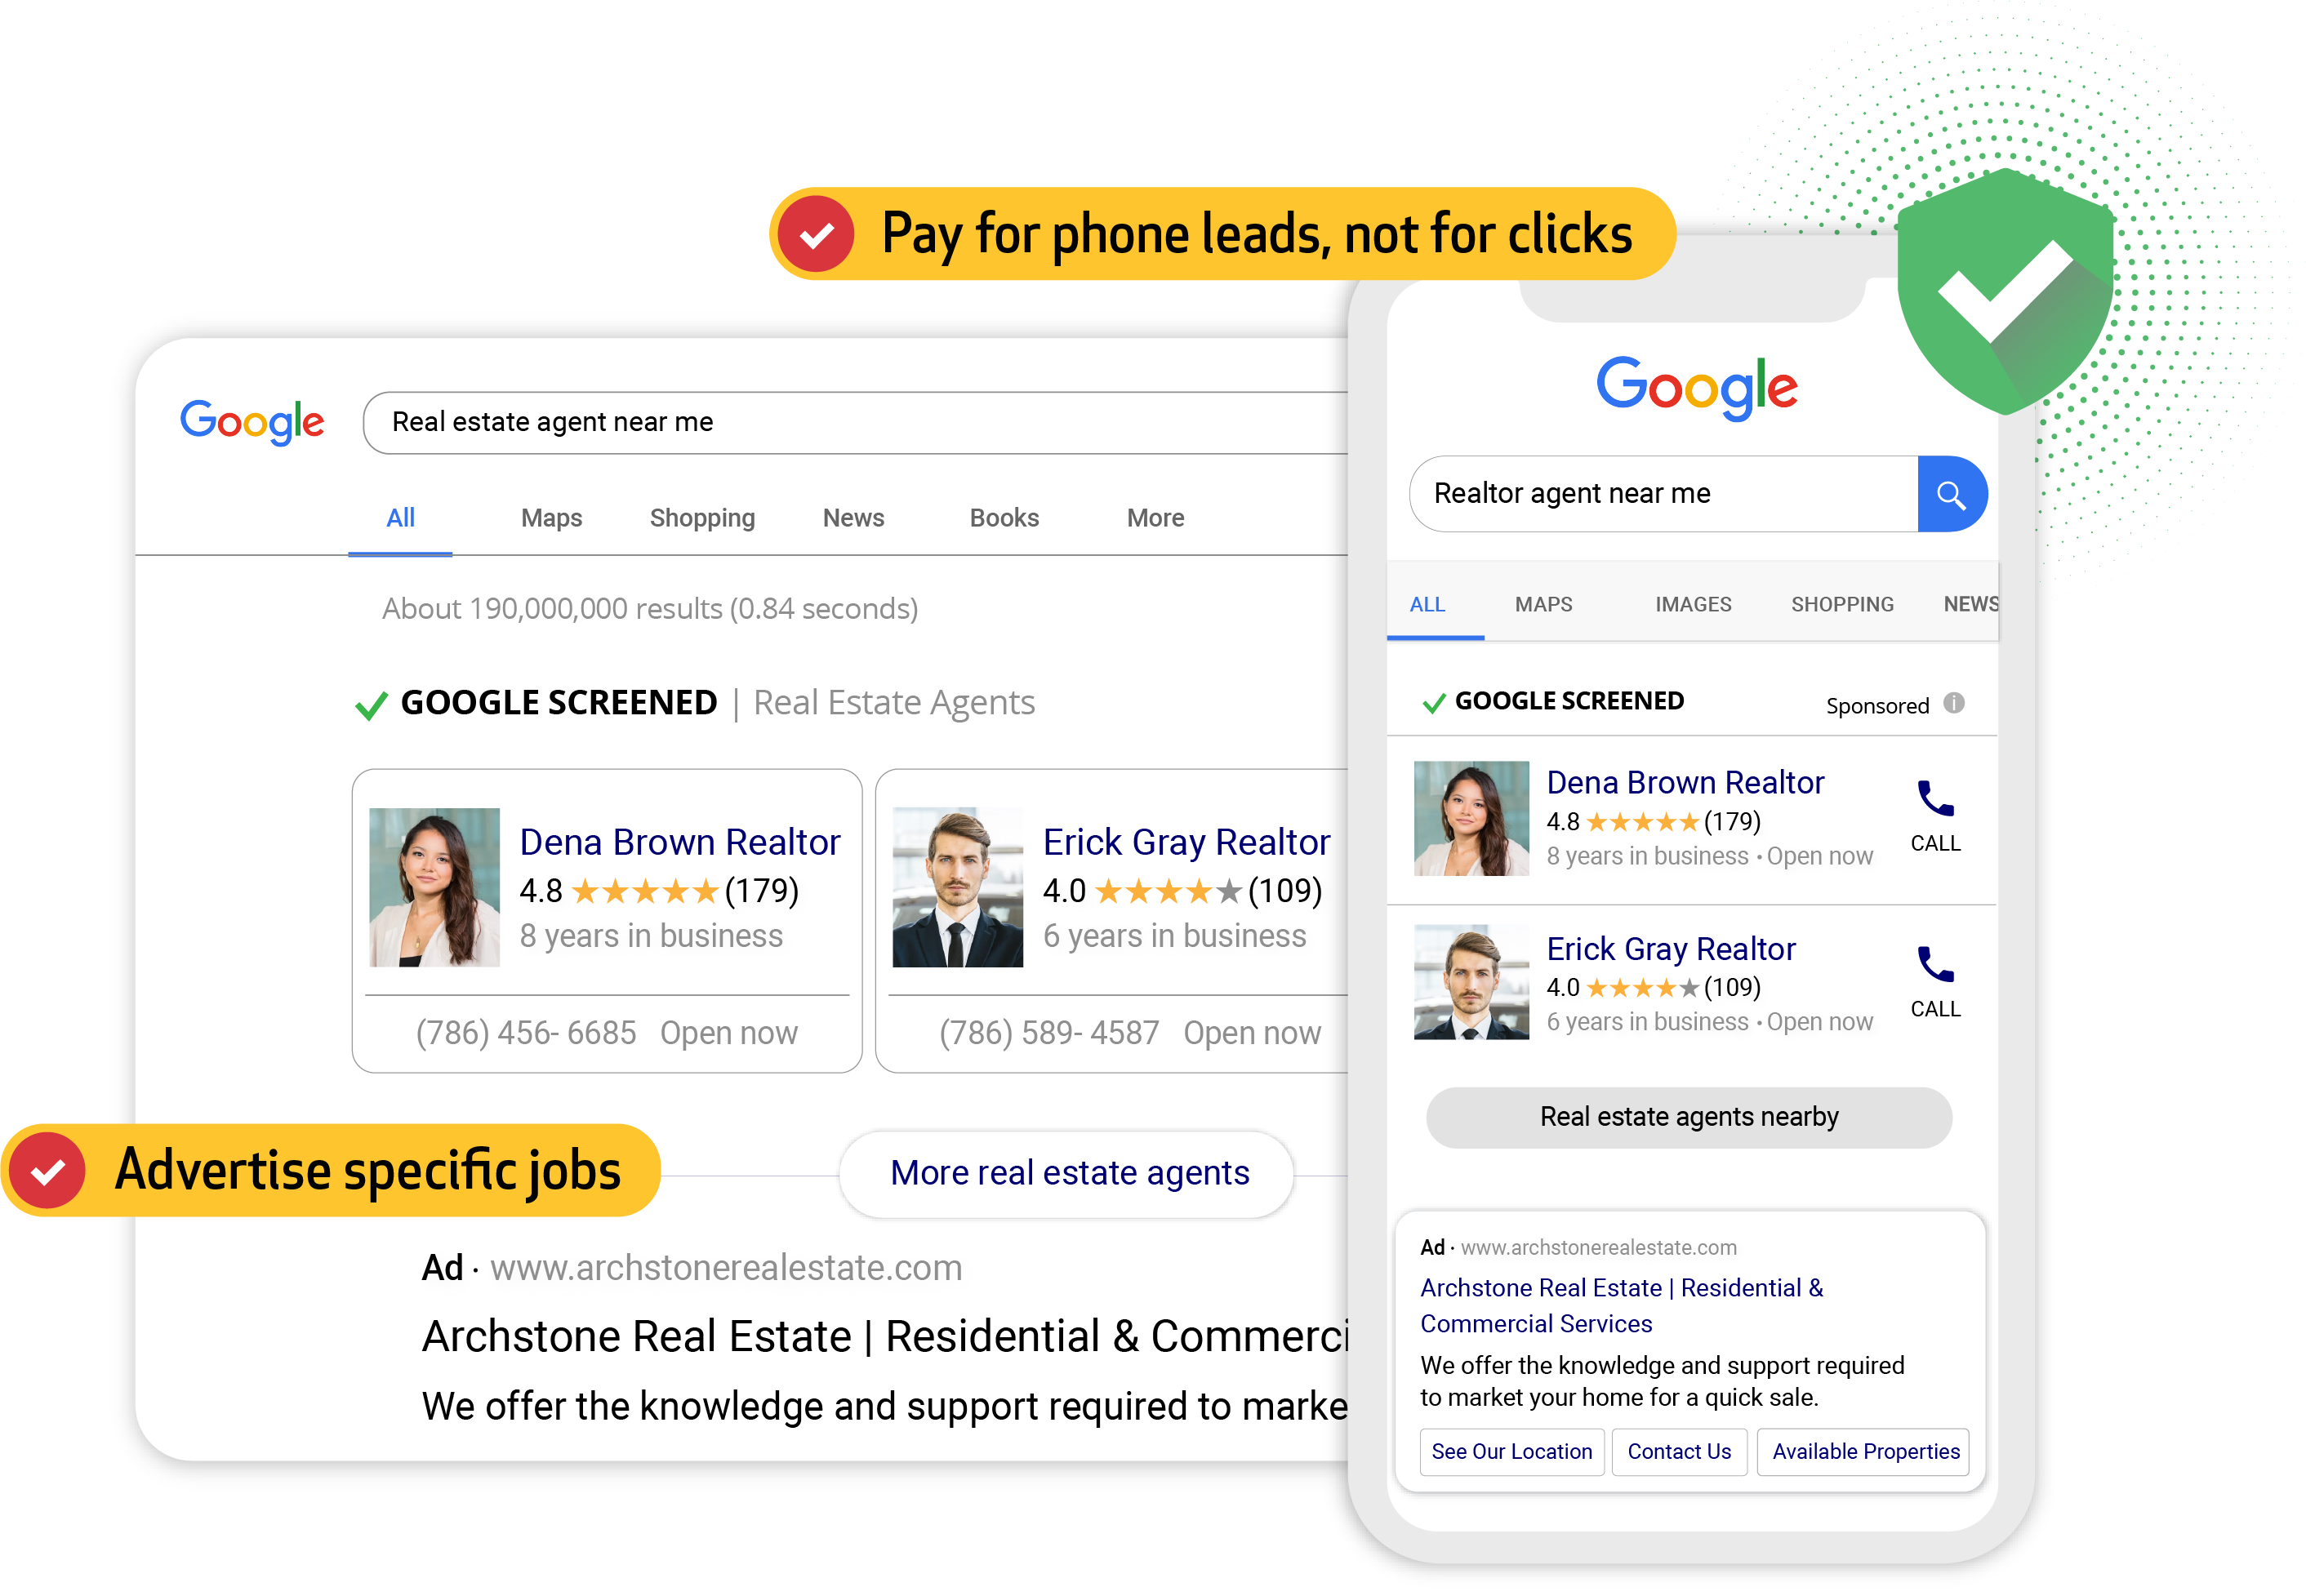 Get your business listed on Amazon Alexa, Siri, Google Assistant, Cortana, and bixby